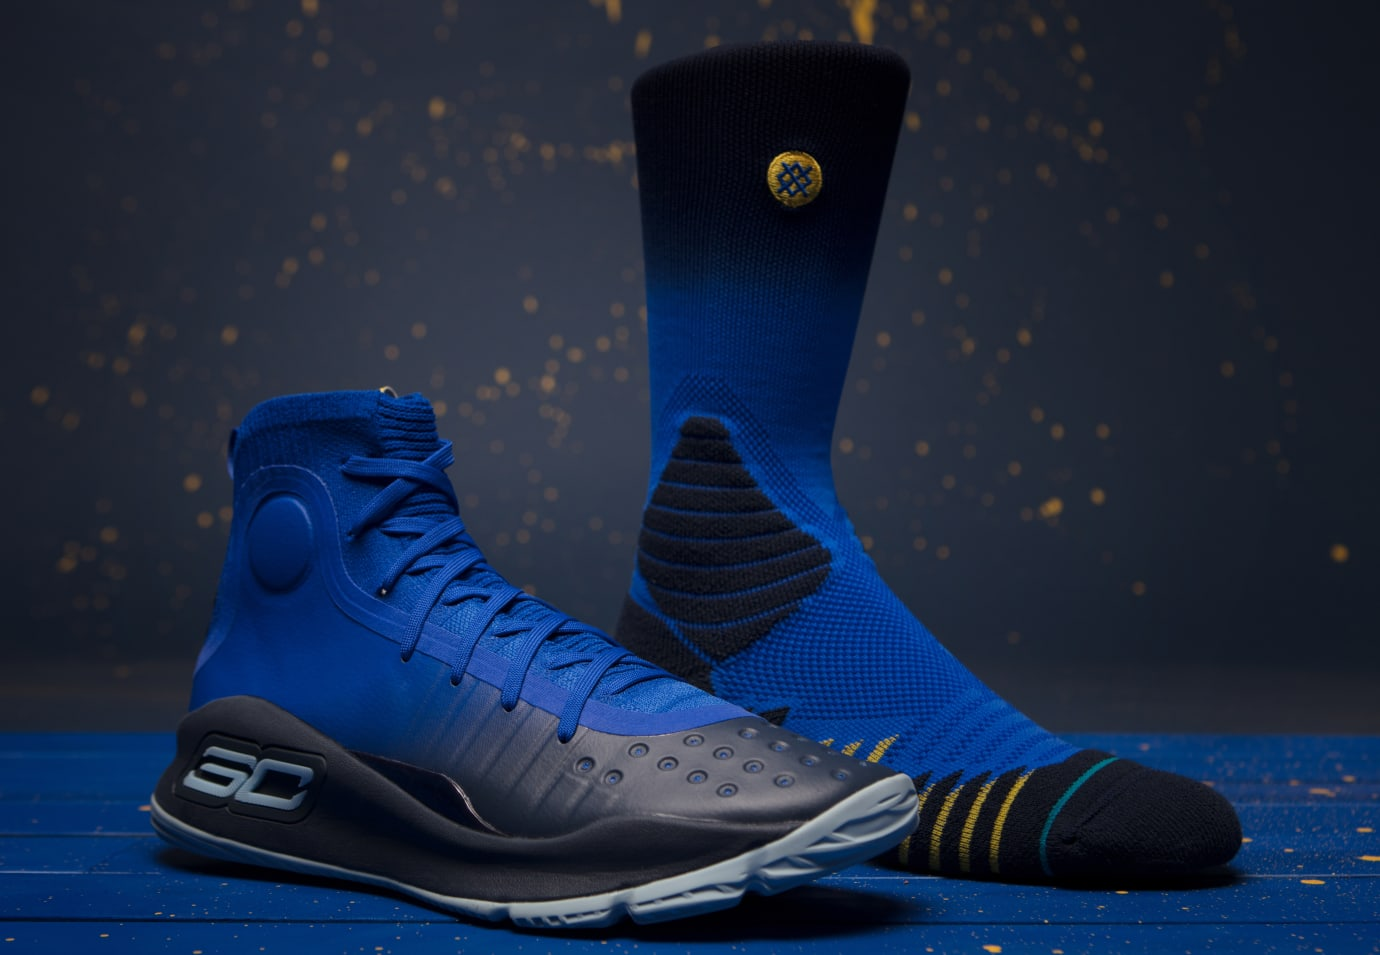 Under Armour Curry 4 'More Fun' 1298306-401 x Stance 1326667-400 Capsule 1